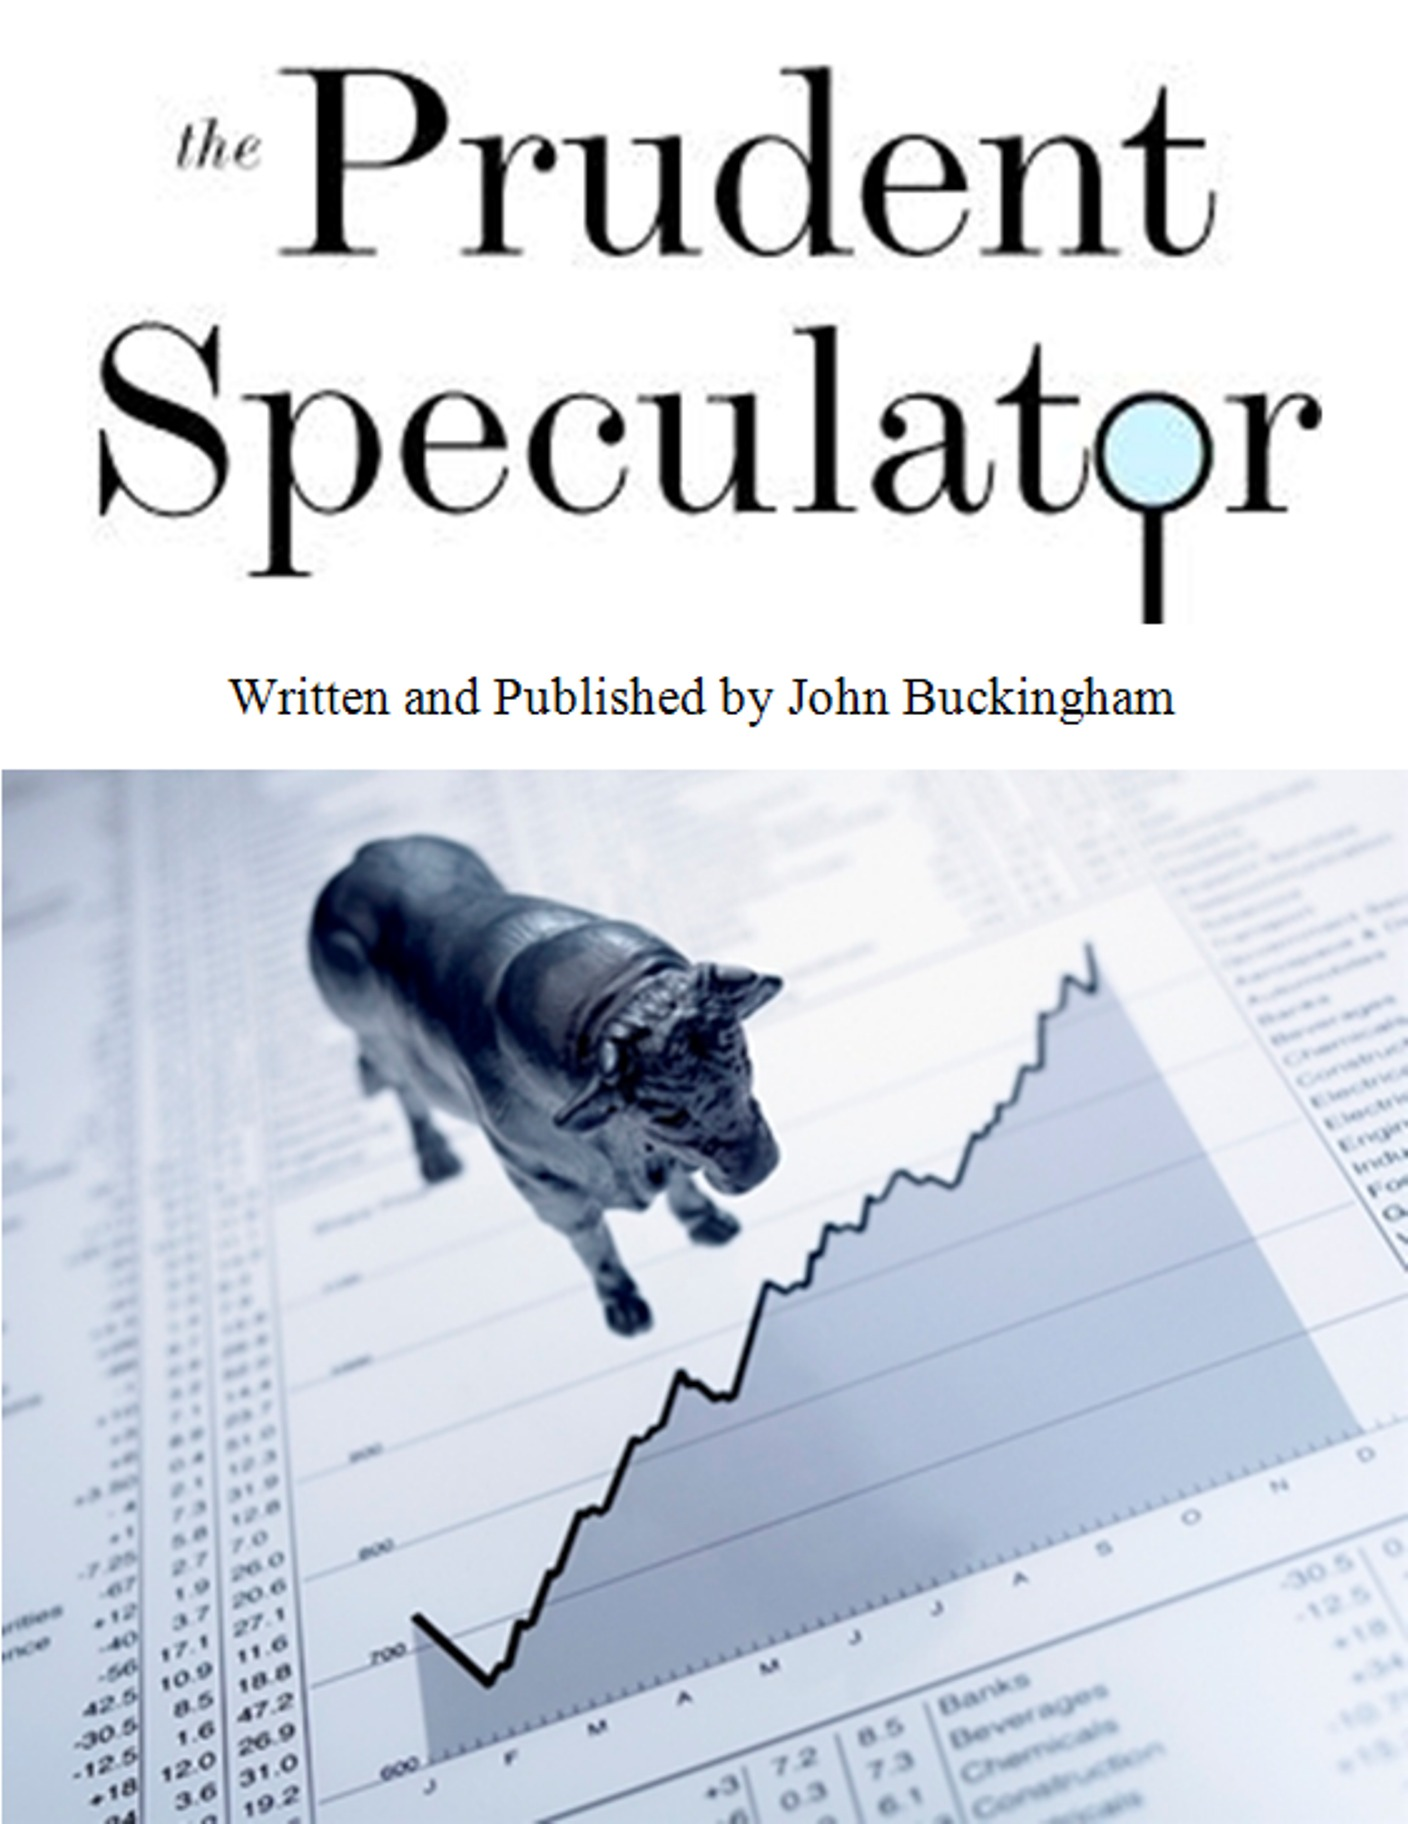 The Prudent Speculator: February 2013